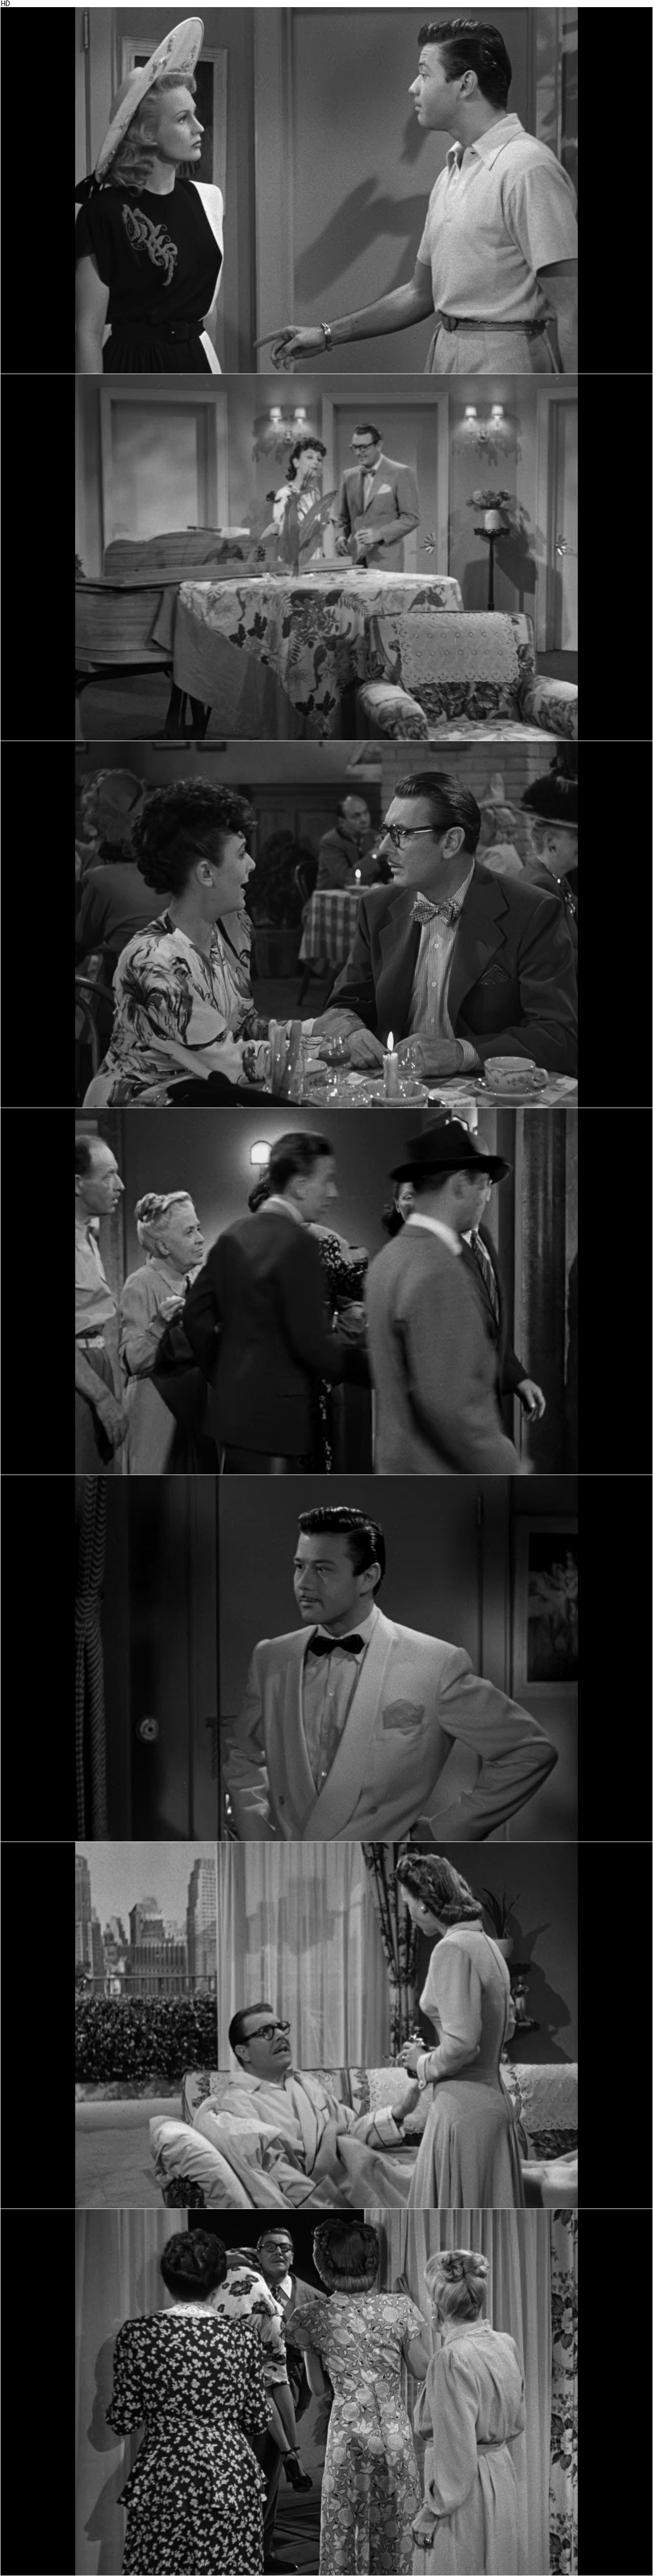 Out of the Blue (1947)